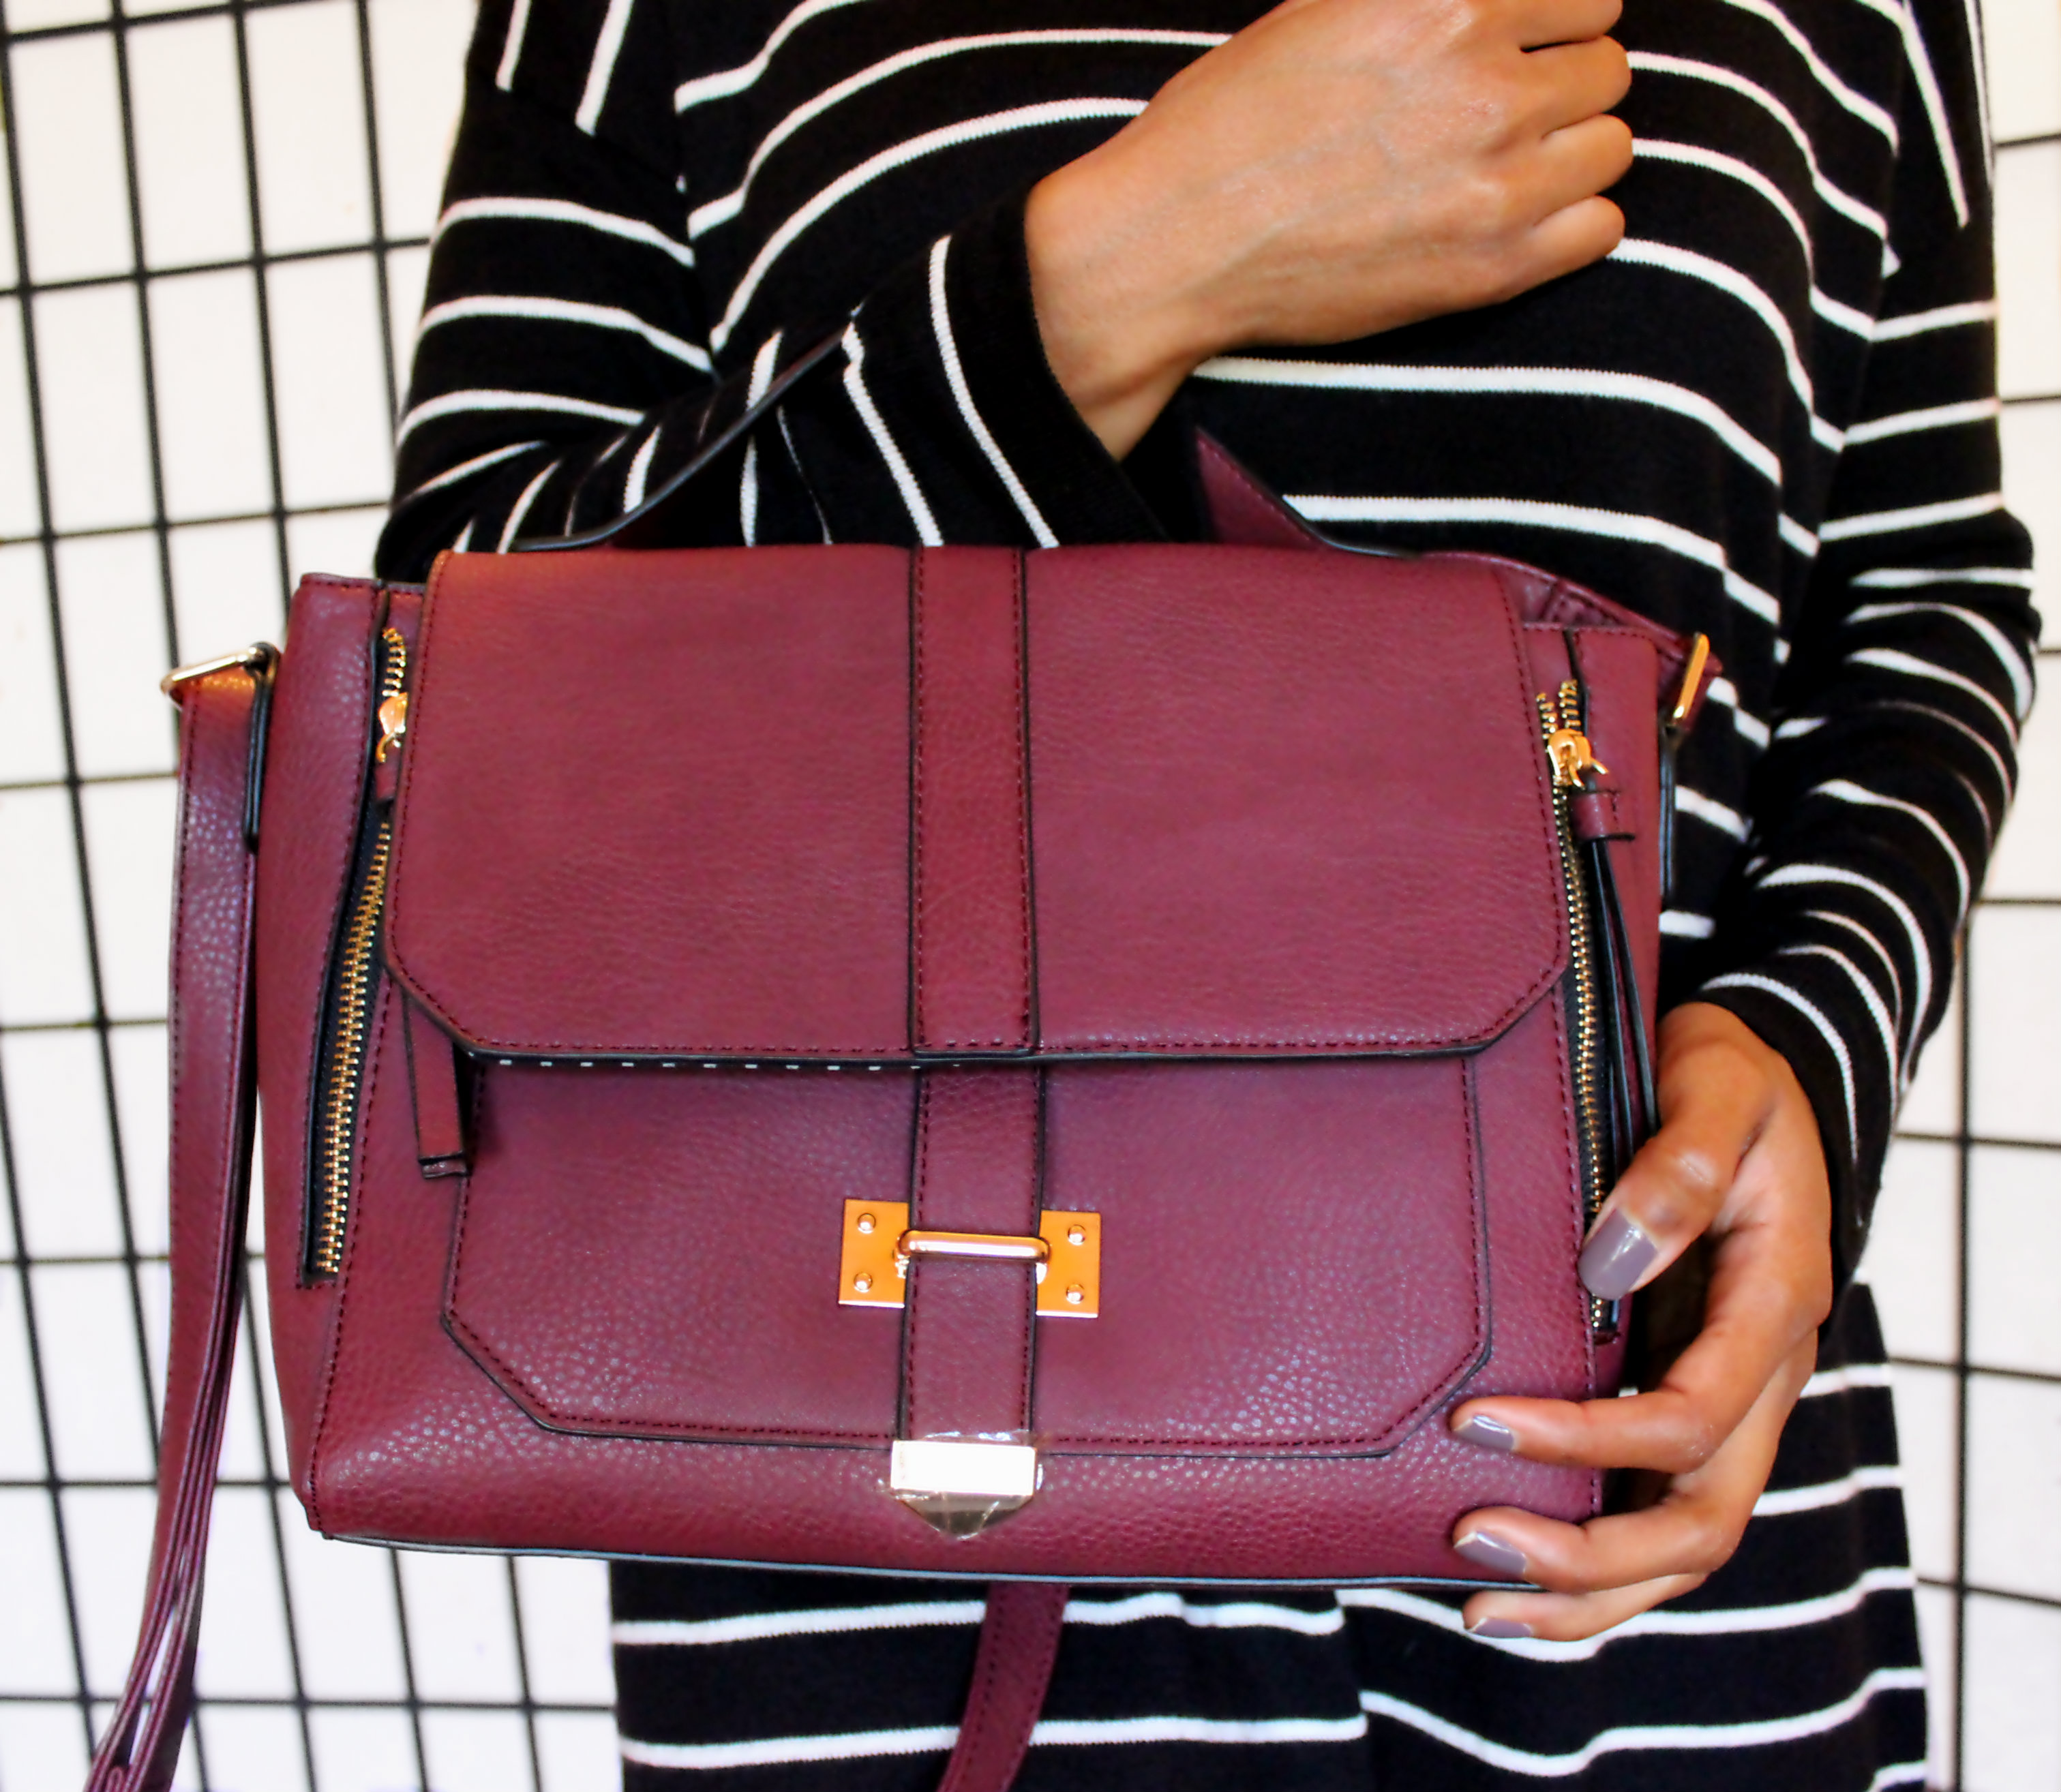 New burgundy purse